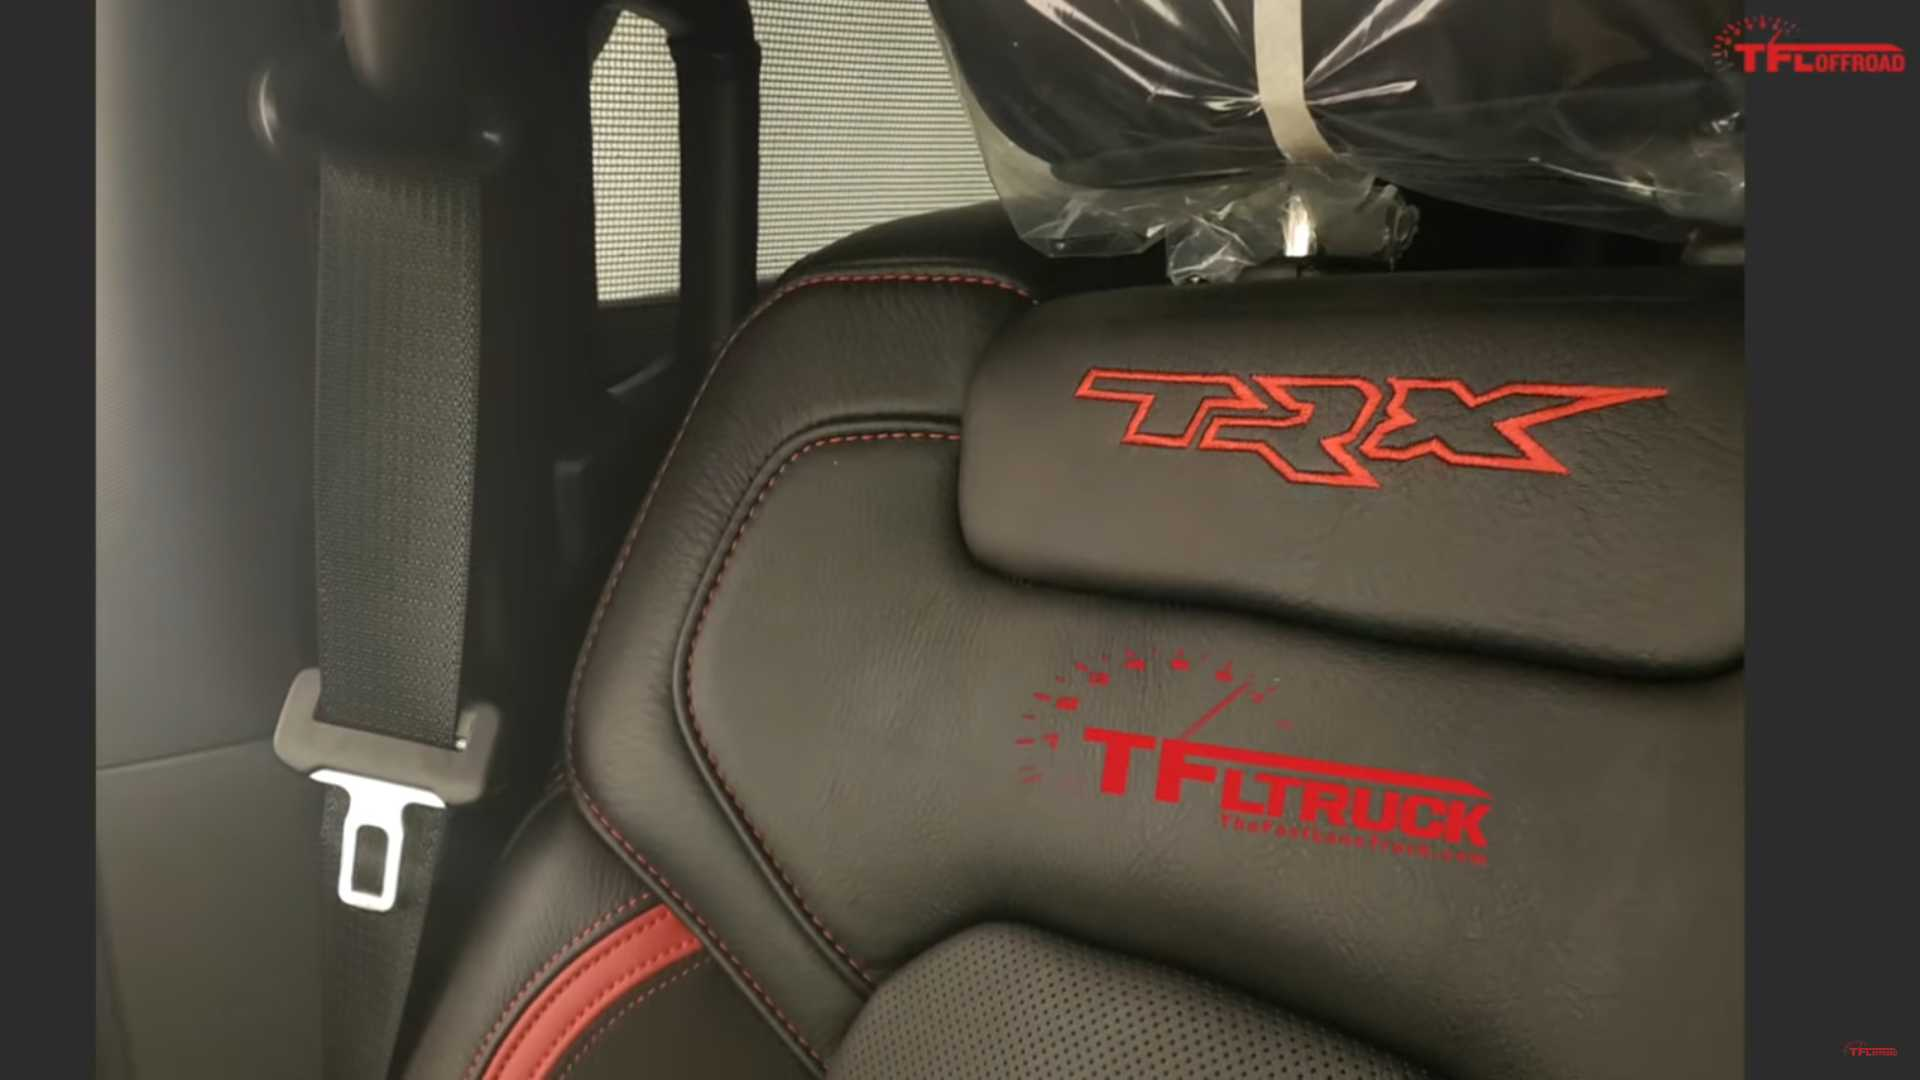 2021 Ram Rebel Trx Images Show Interior And Engine Sound Caught On Video Autoevolution